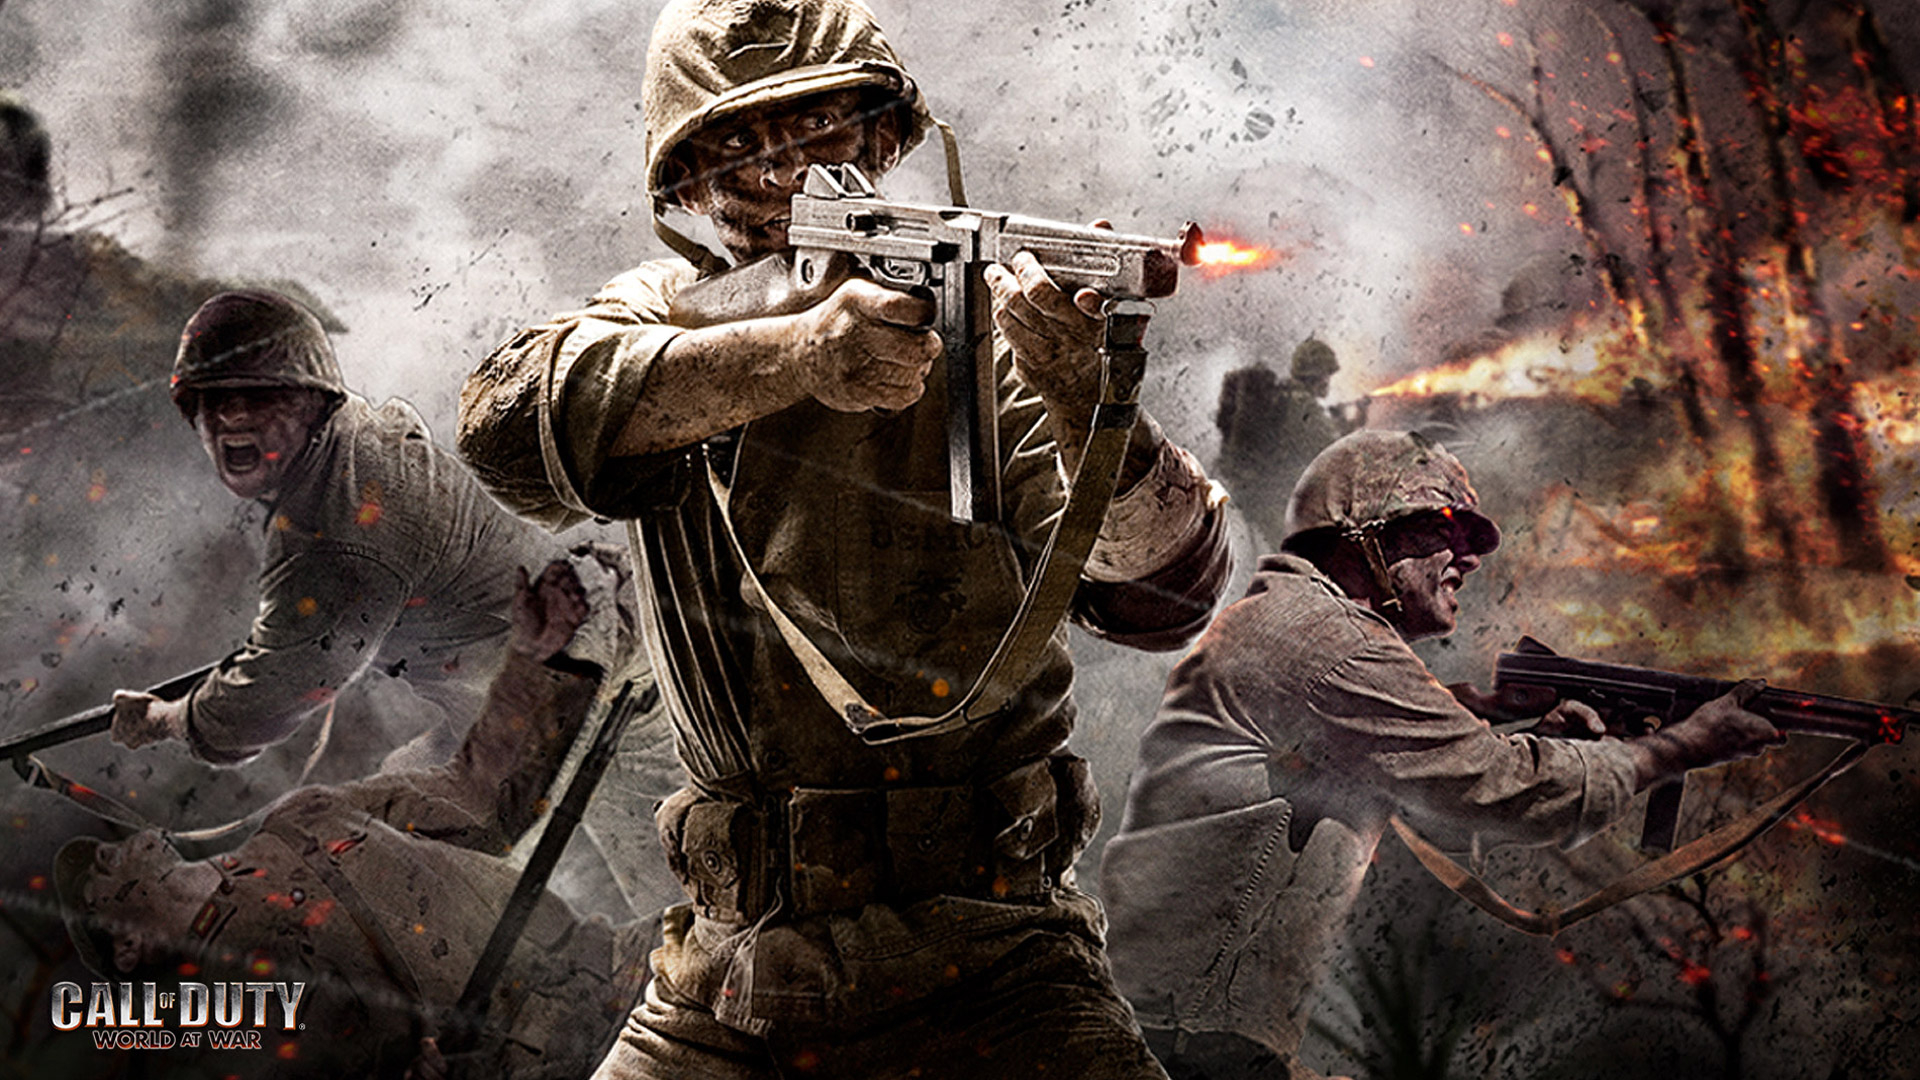 Next Call of Duty could return to WWII if leaked images are genuine 1920x1080